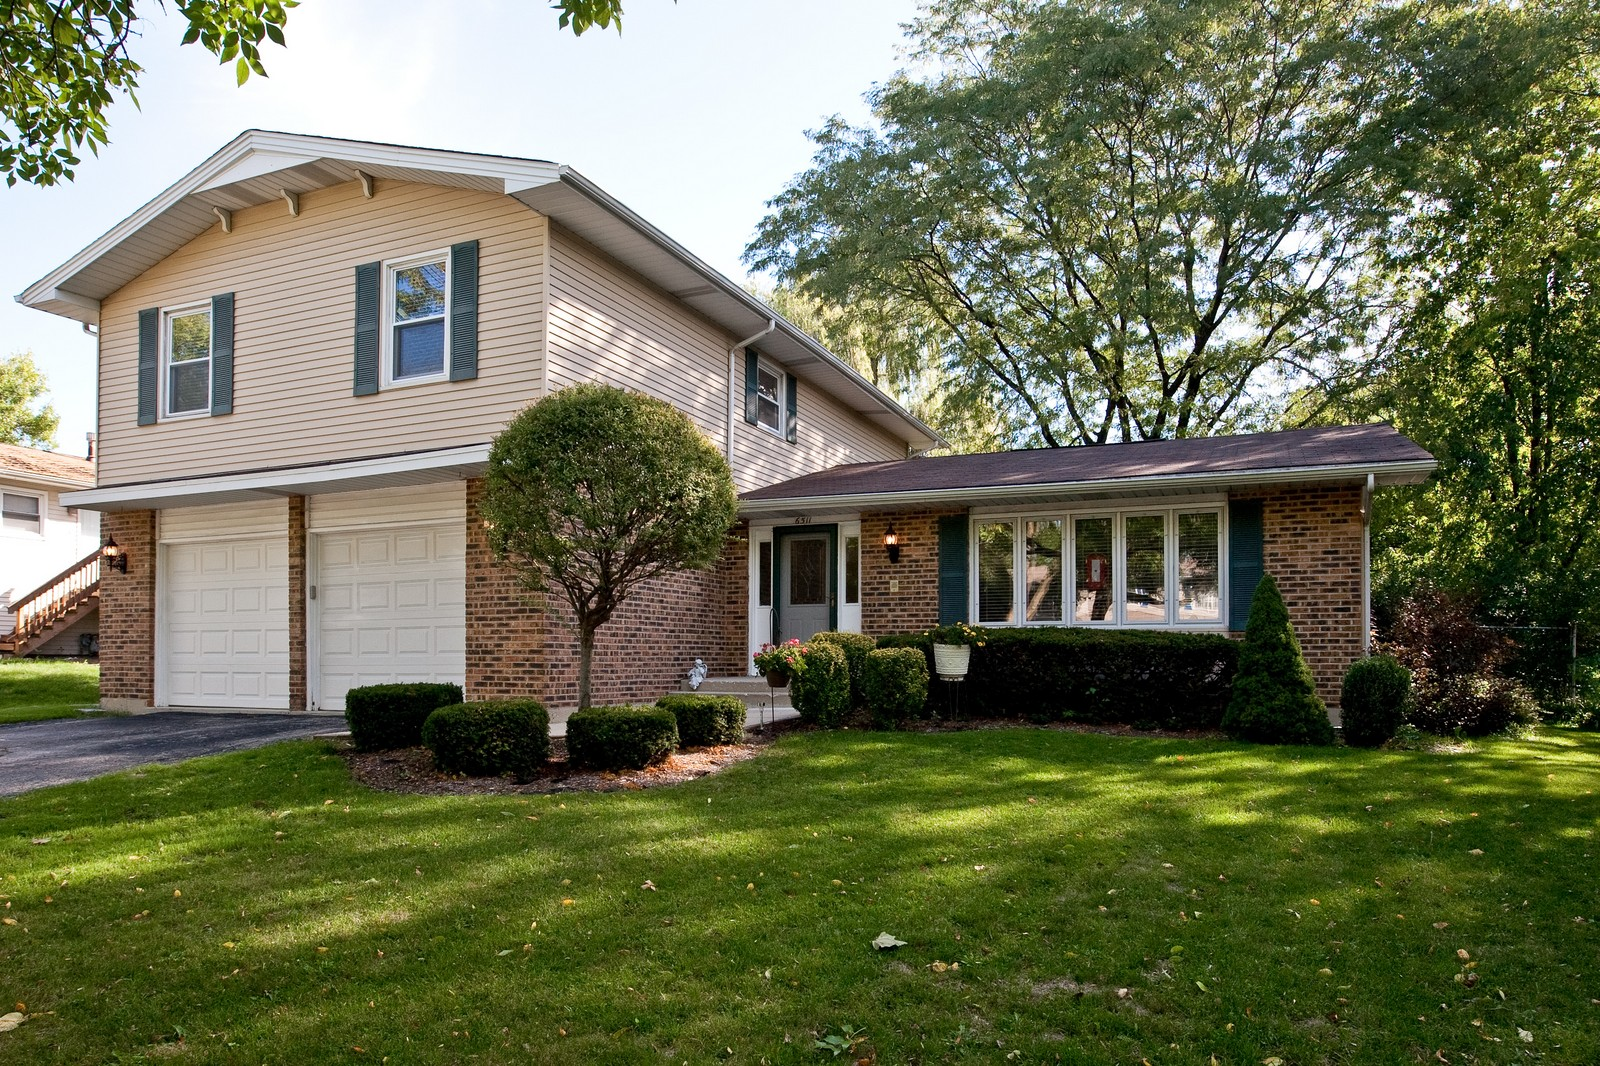 Real Estate Photography - 6511 Terrace, Downers Grove, IL, 60516 - Front View